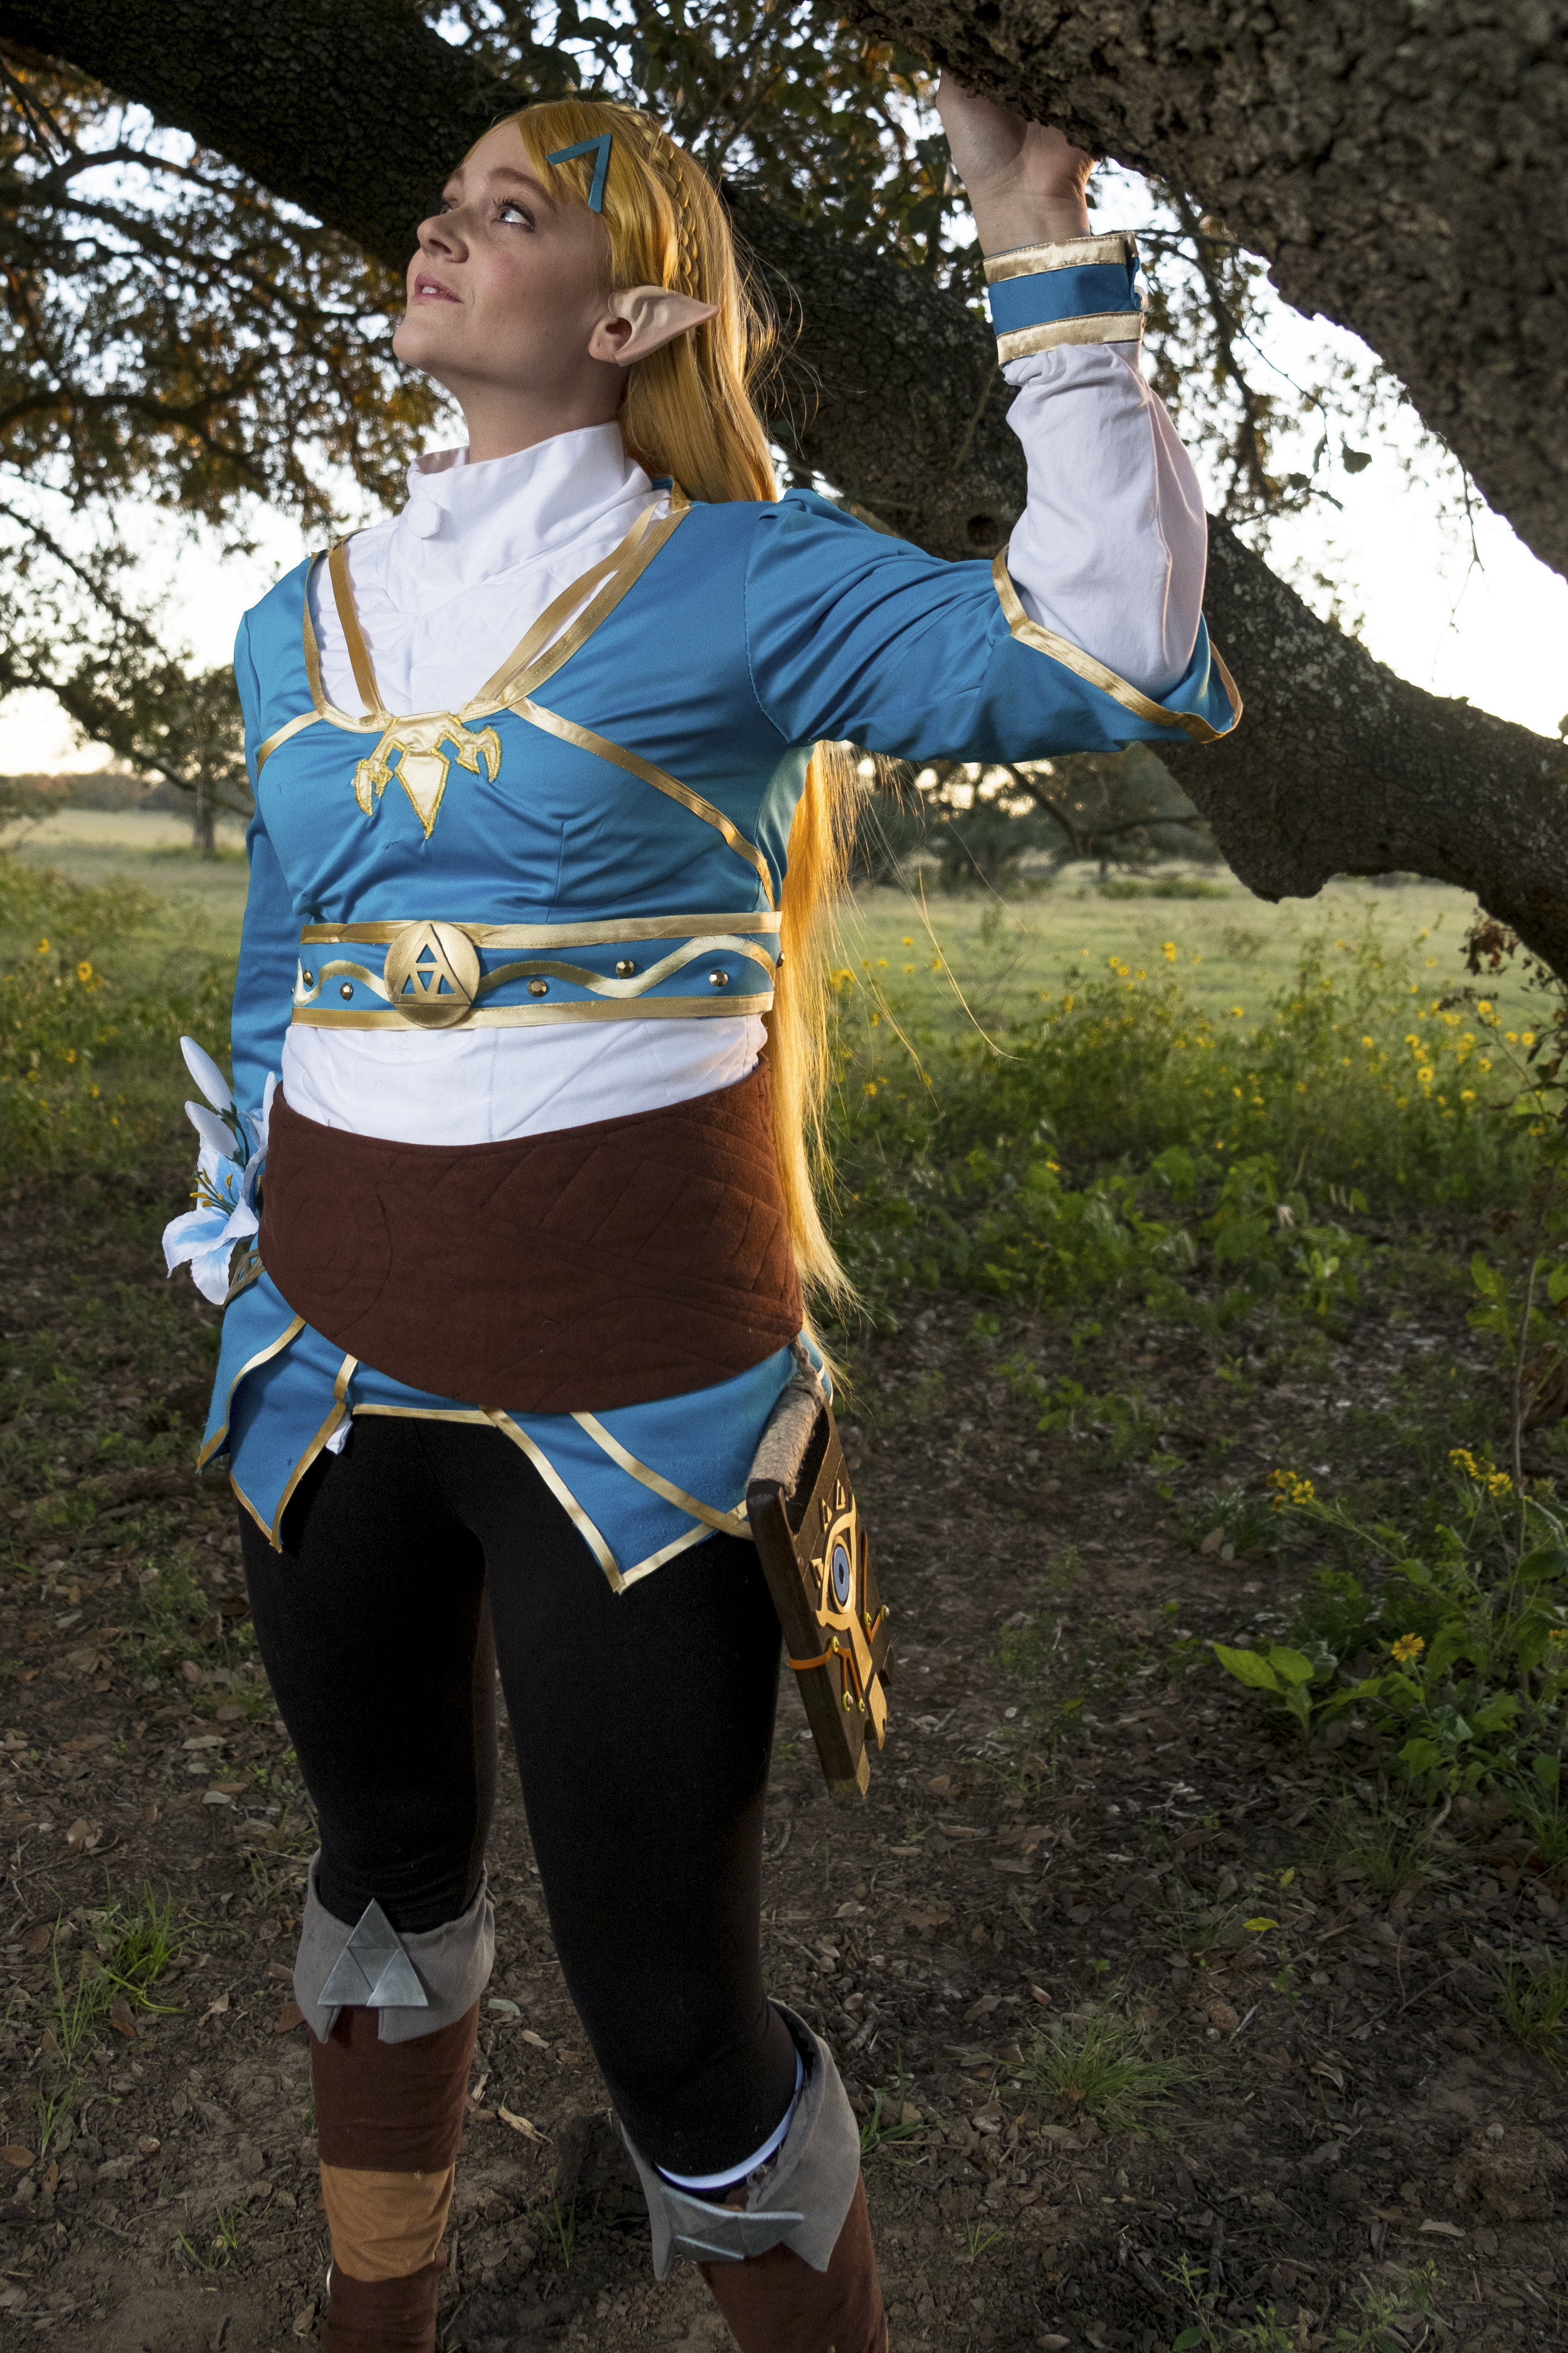 Allybelle Cosplay in Princess Zelda cosplay